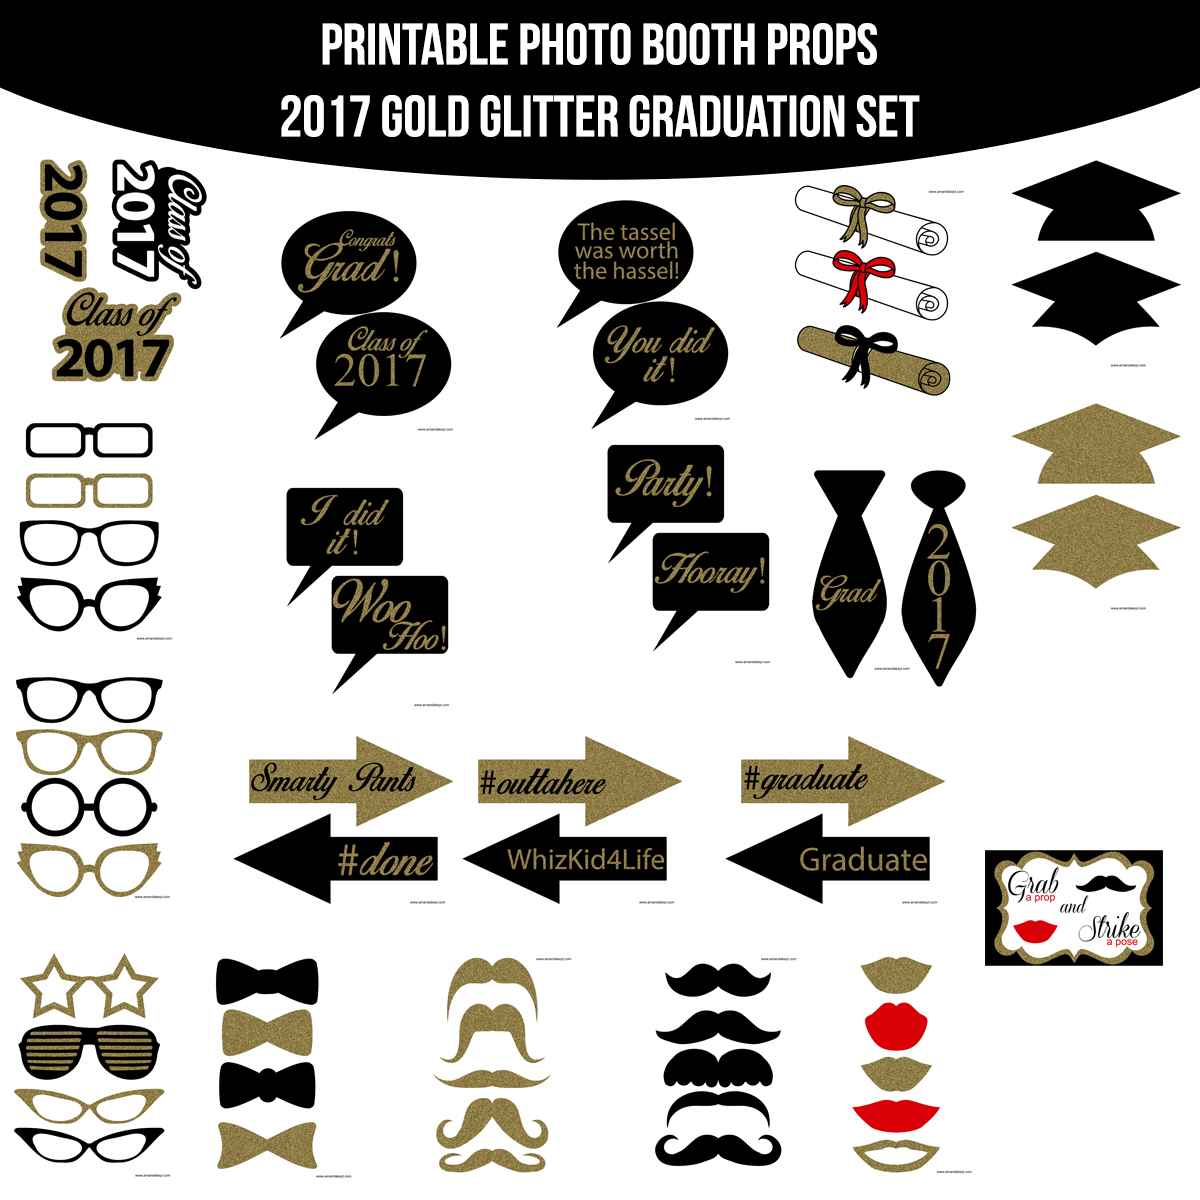 graphic about Printable Graduation Photo Booth Props named University Grad Amanda Keyt Printable Patterns